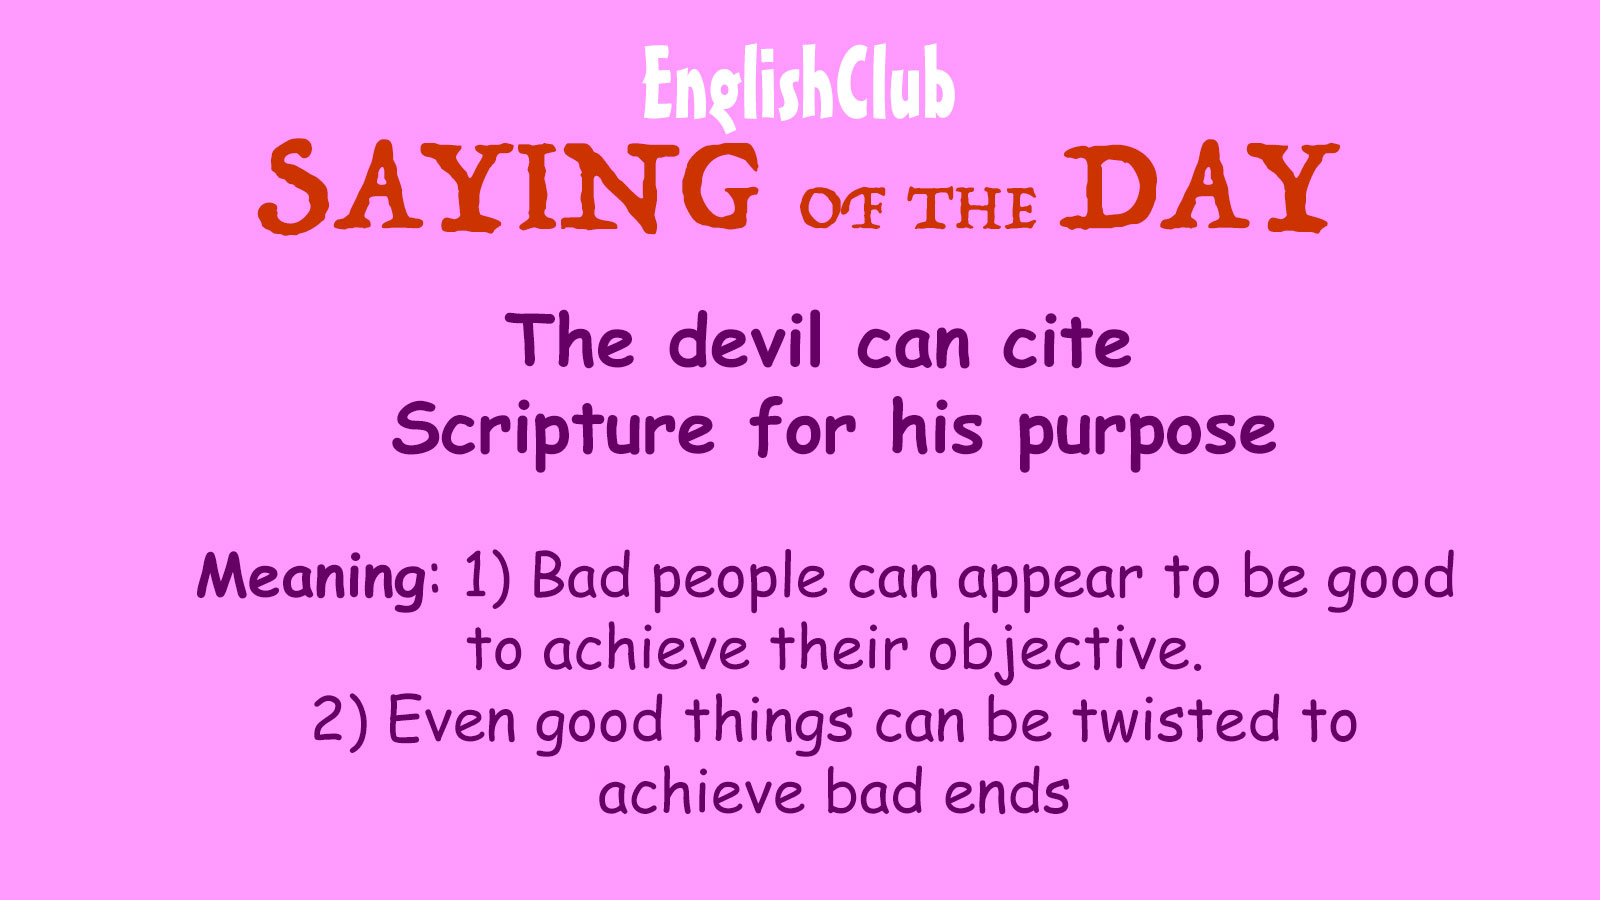 The devil can cite Scripture for his purpose